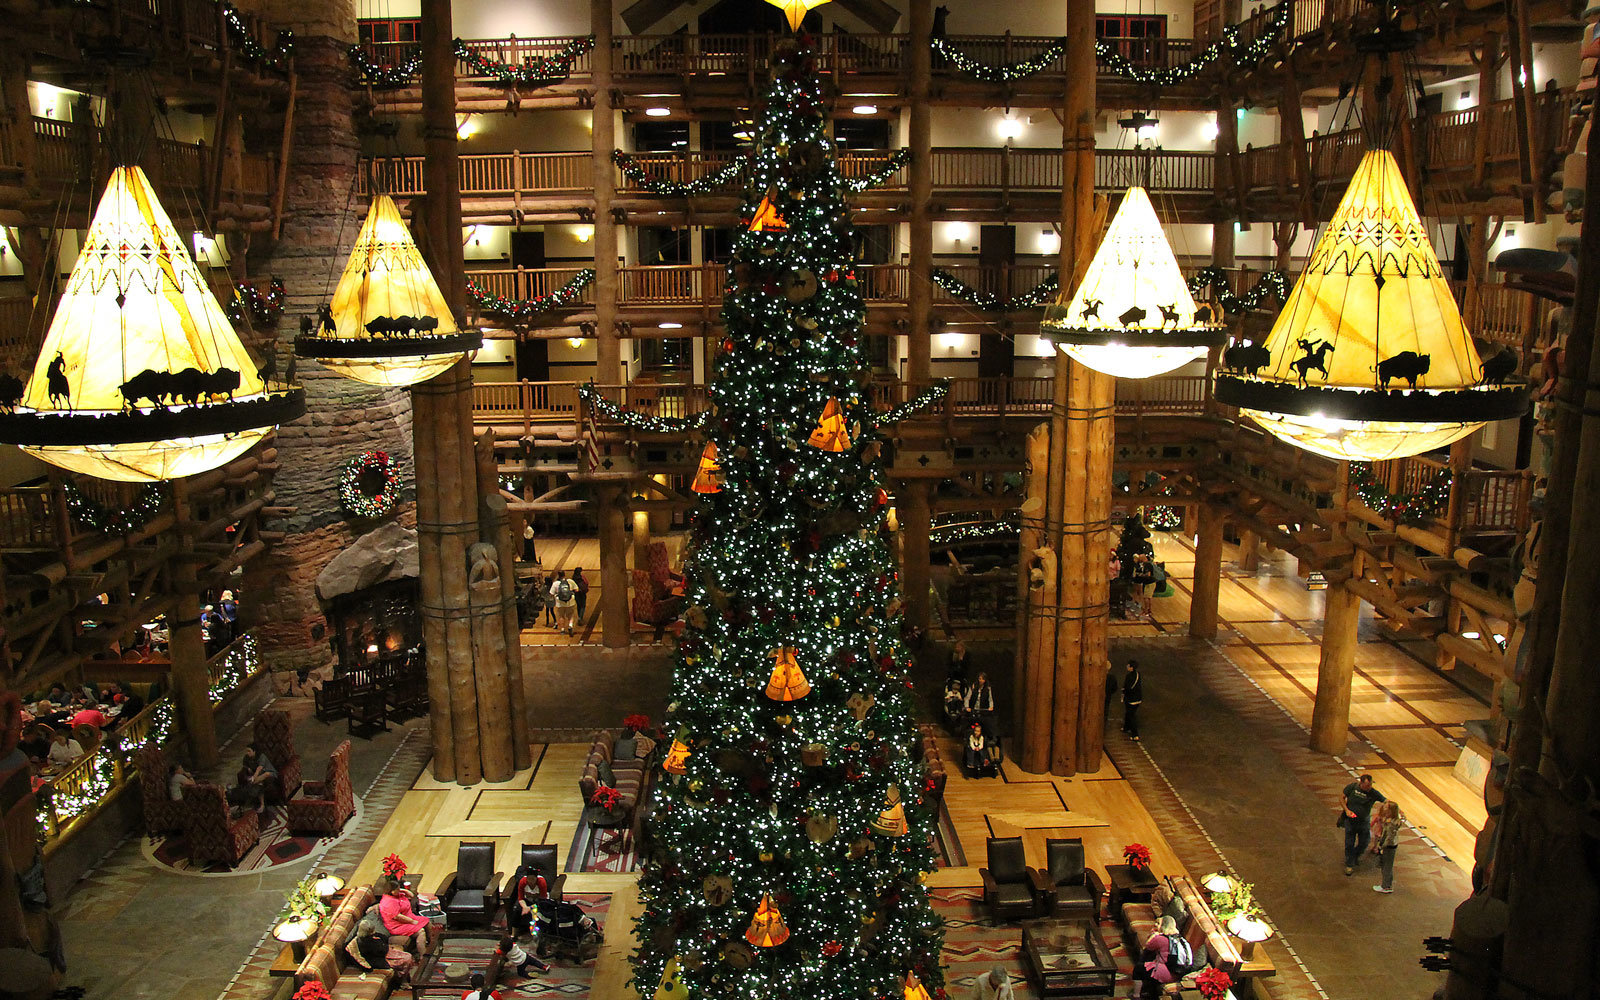 wilderness lodge lobby at christmas